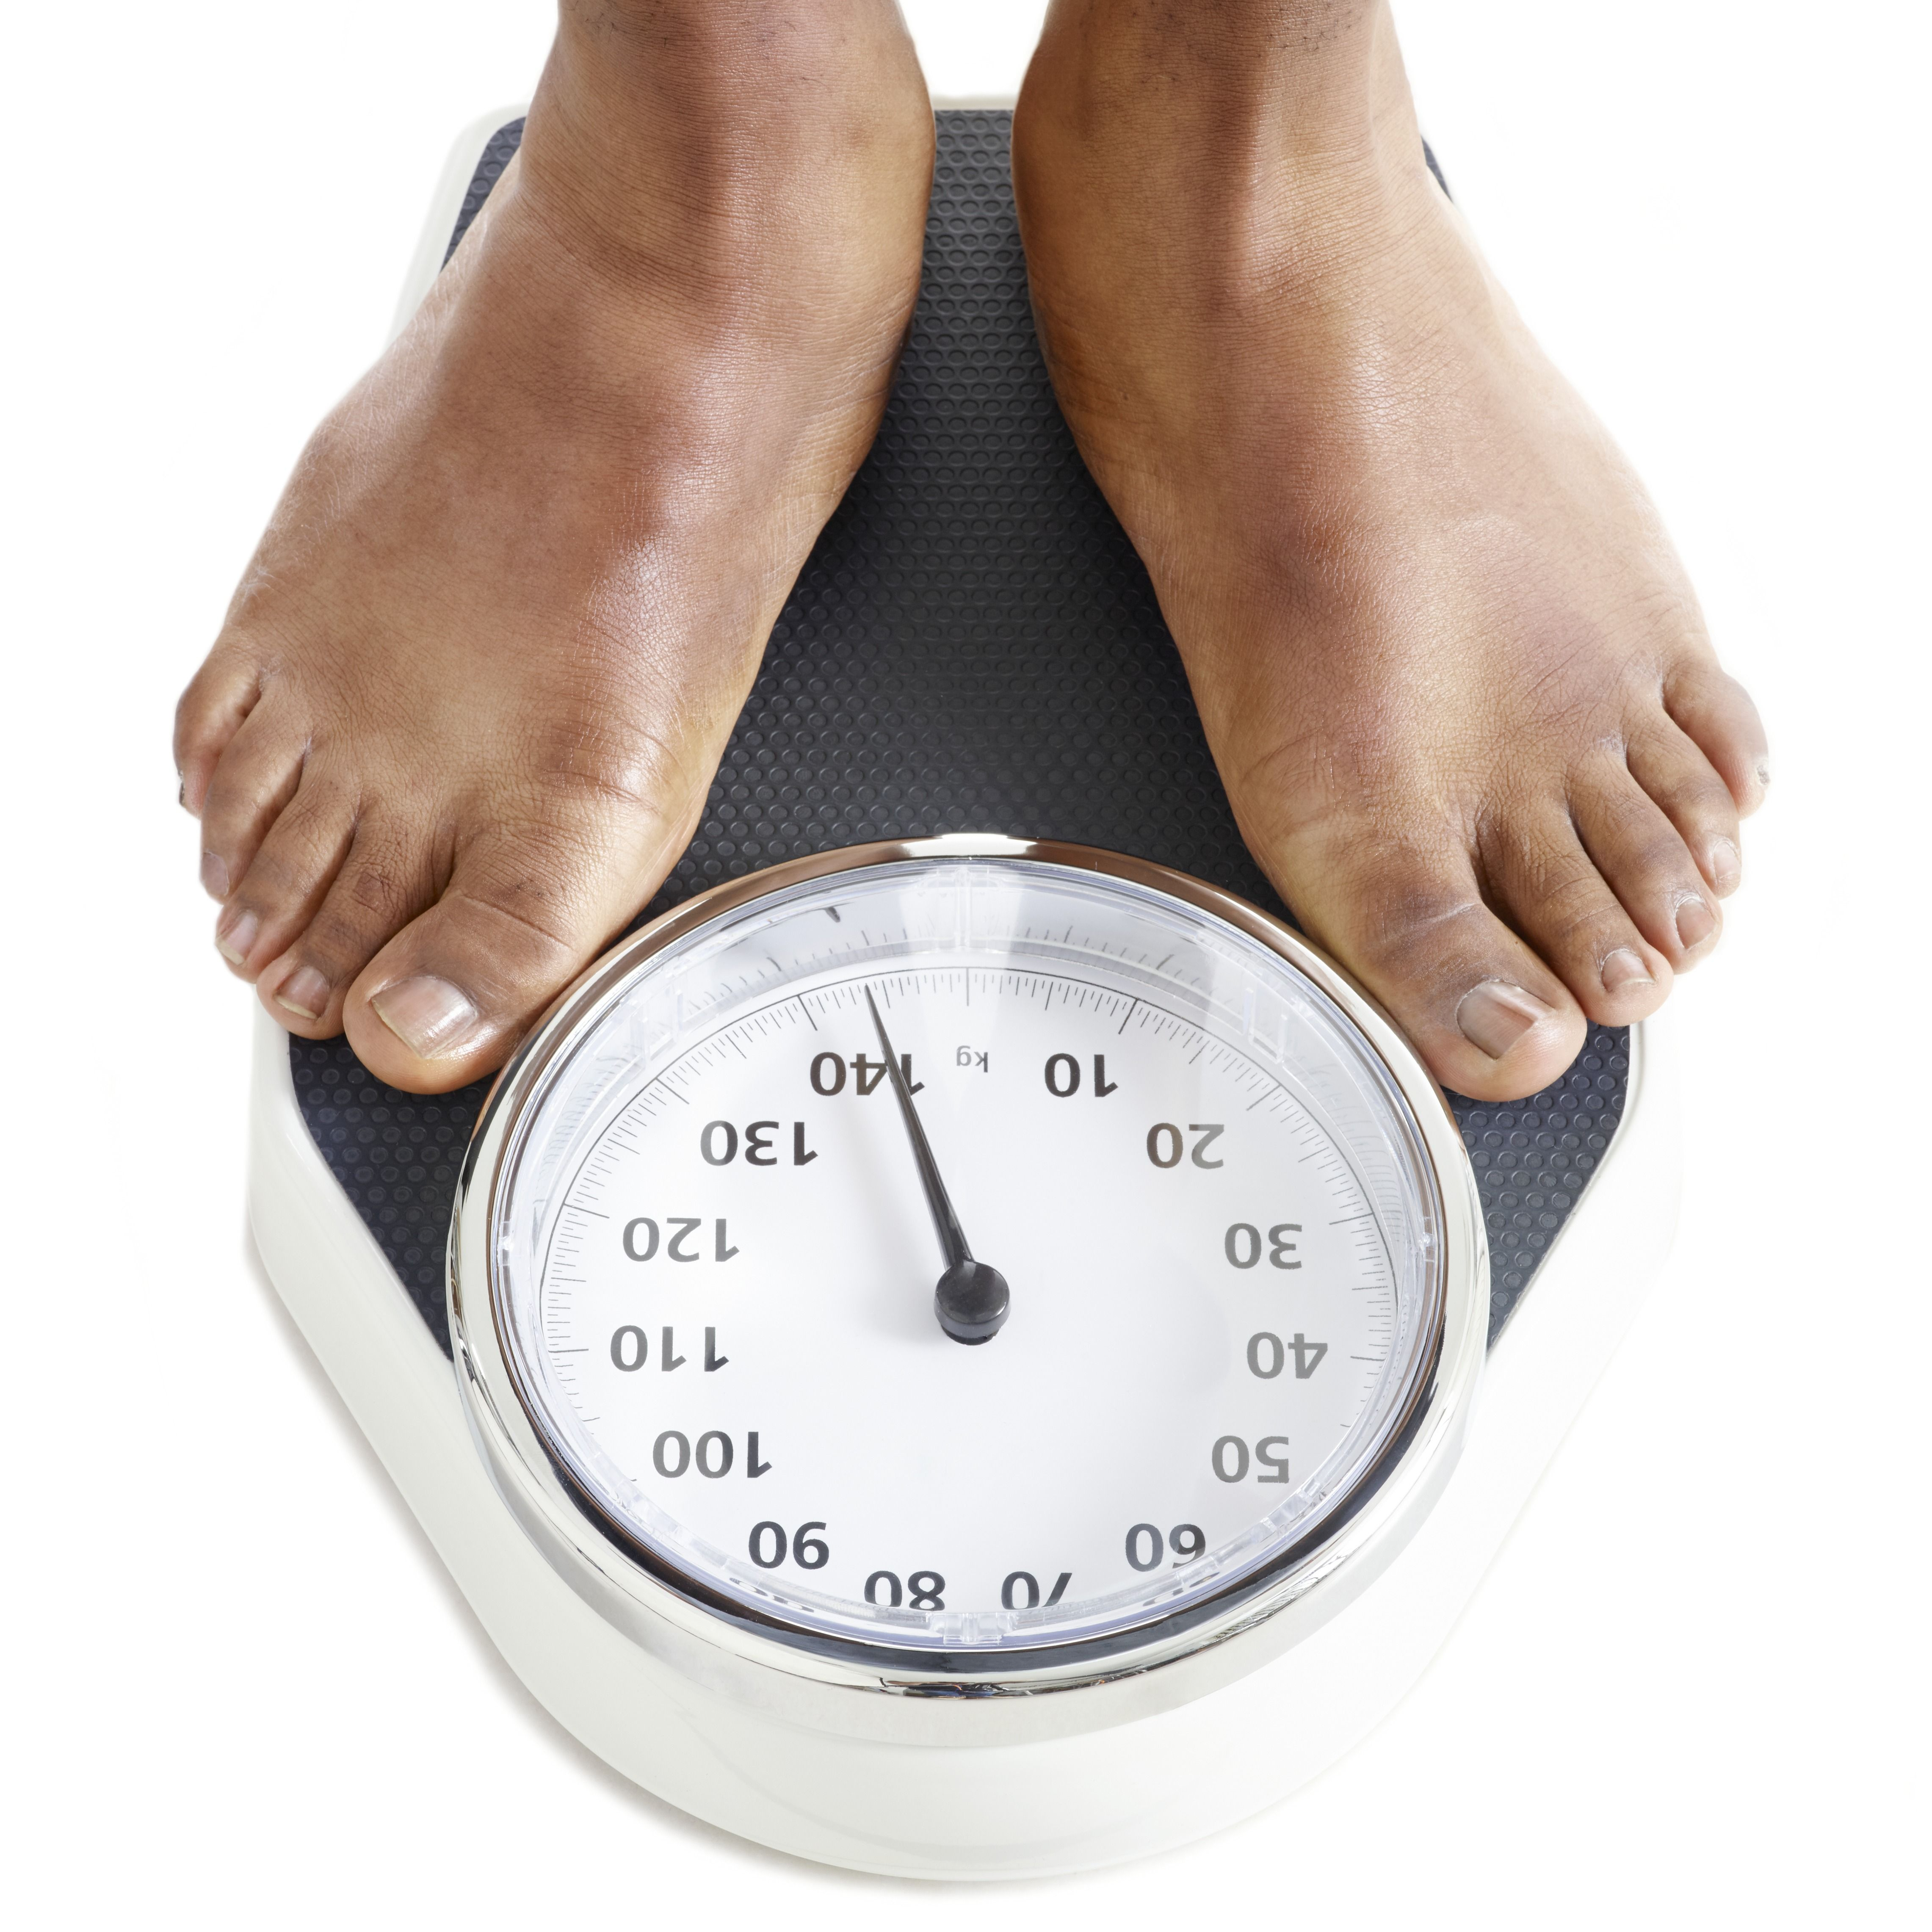 How Much Weight Can You Lose in a Week?